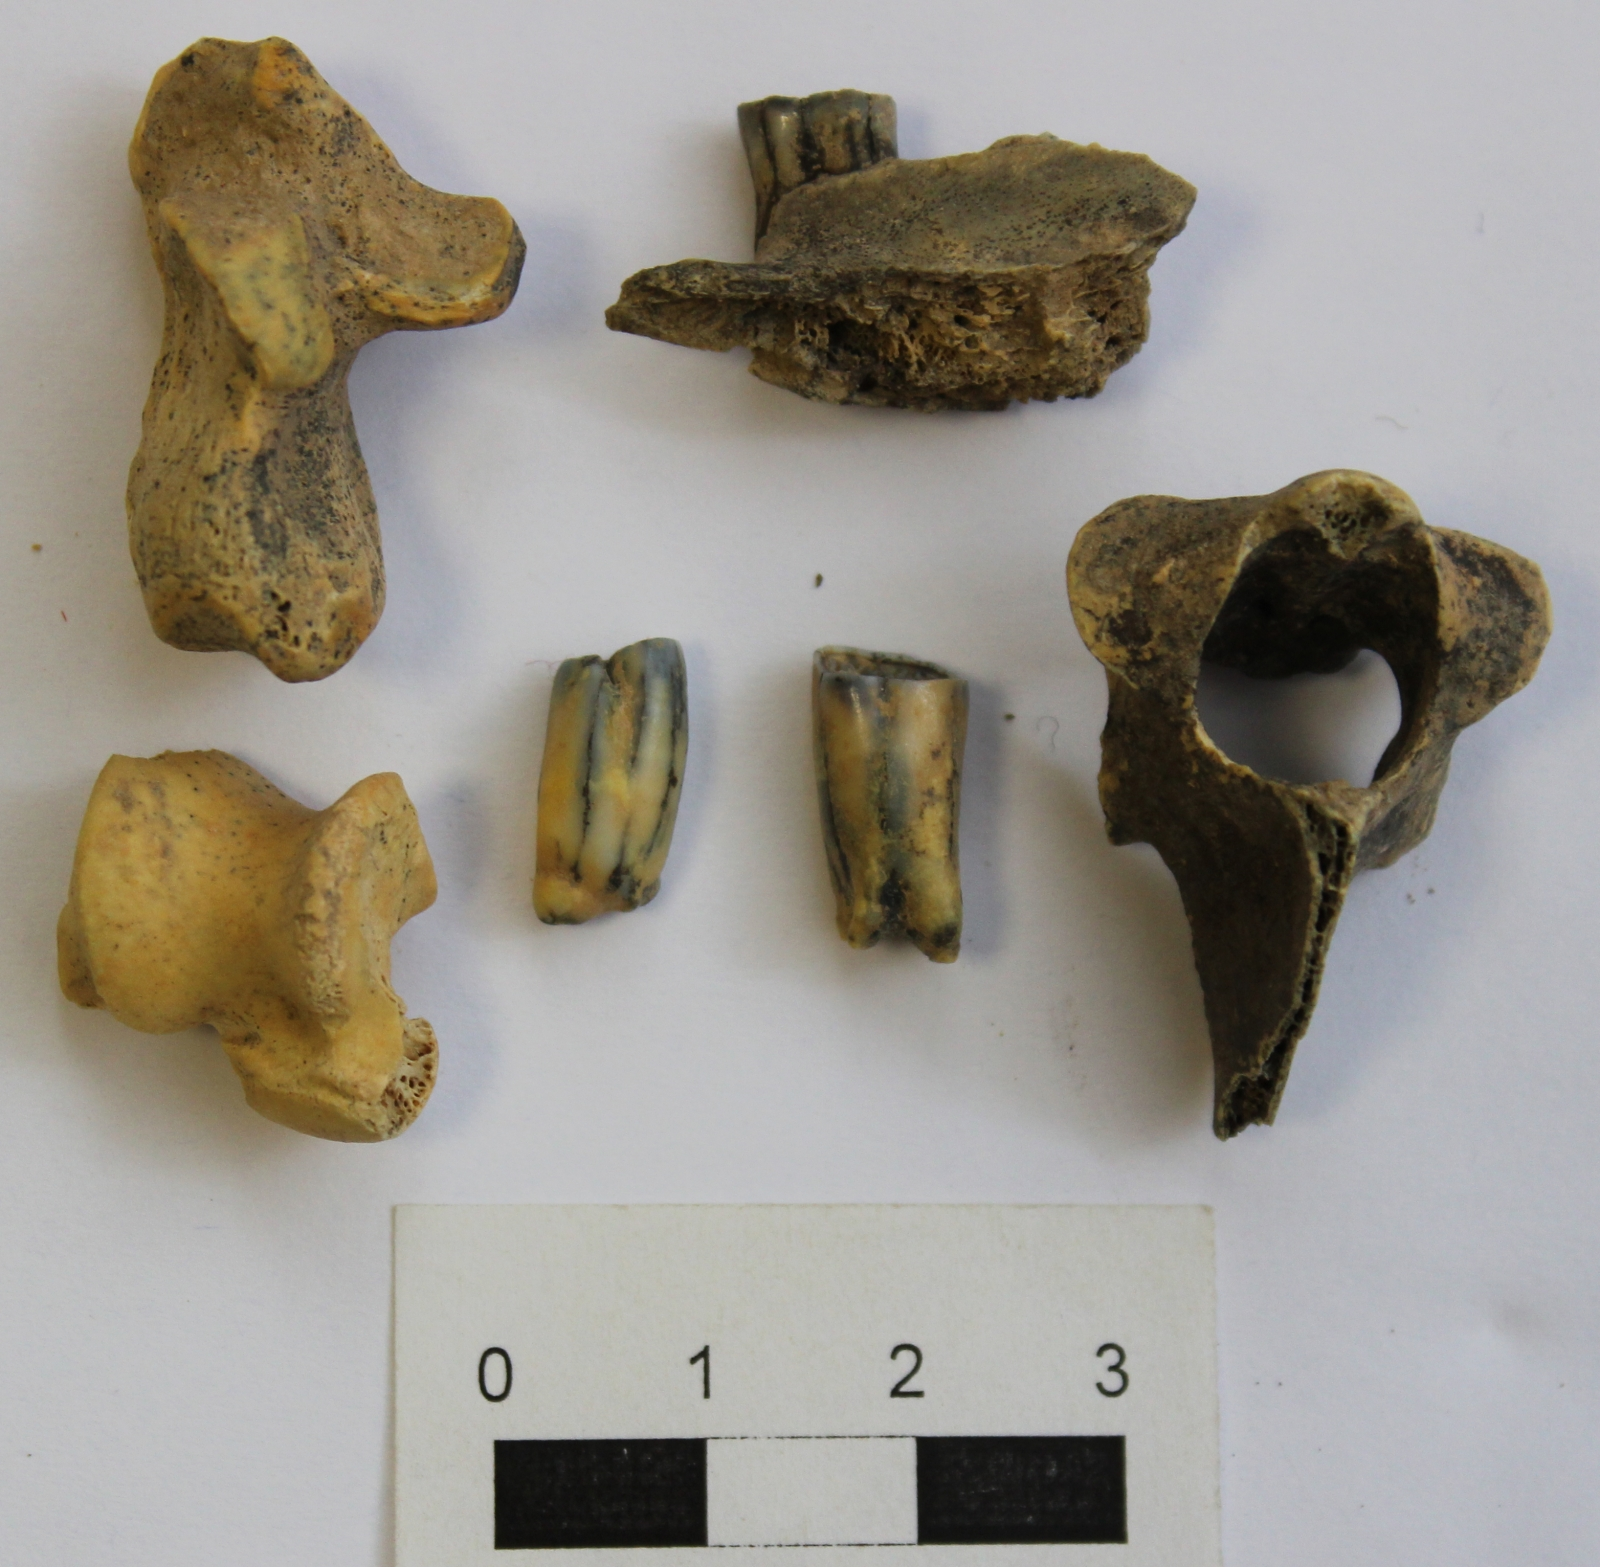 Methods used dating fossils 7